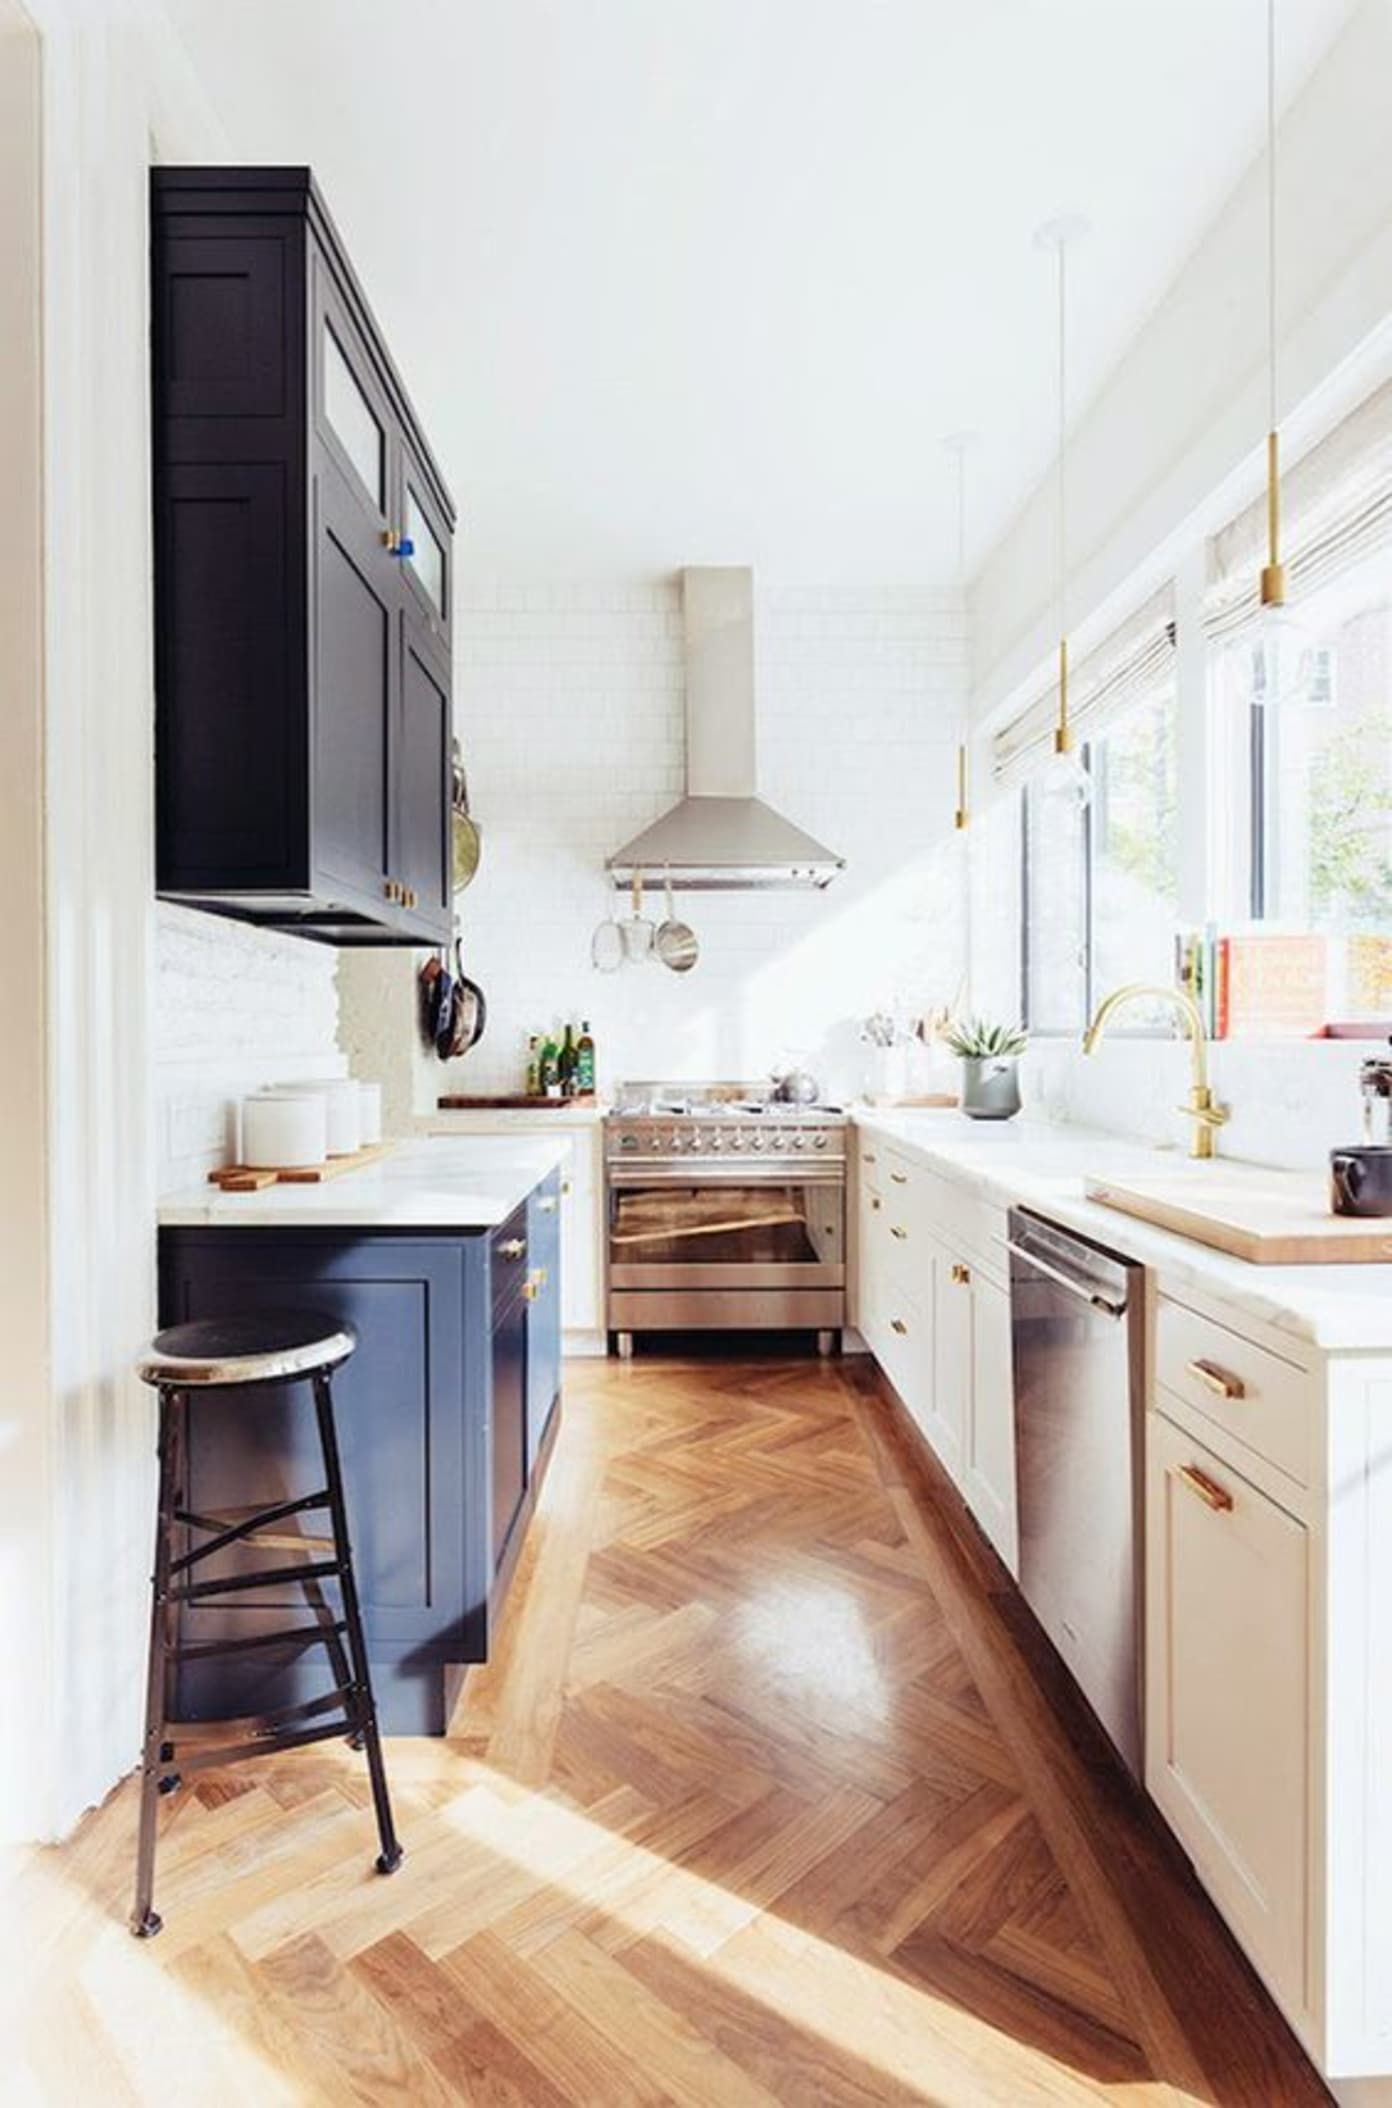 7 of the Most Gorgeous (and Practical!) Galley Kitchens in the World